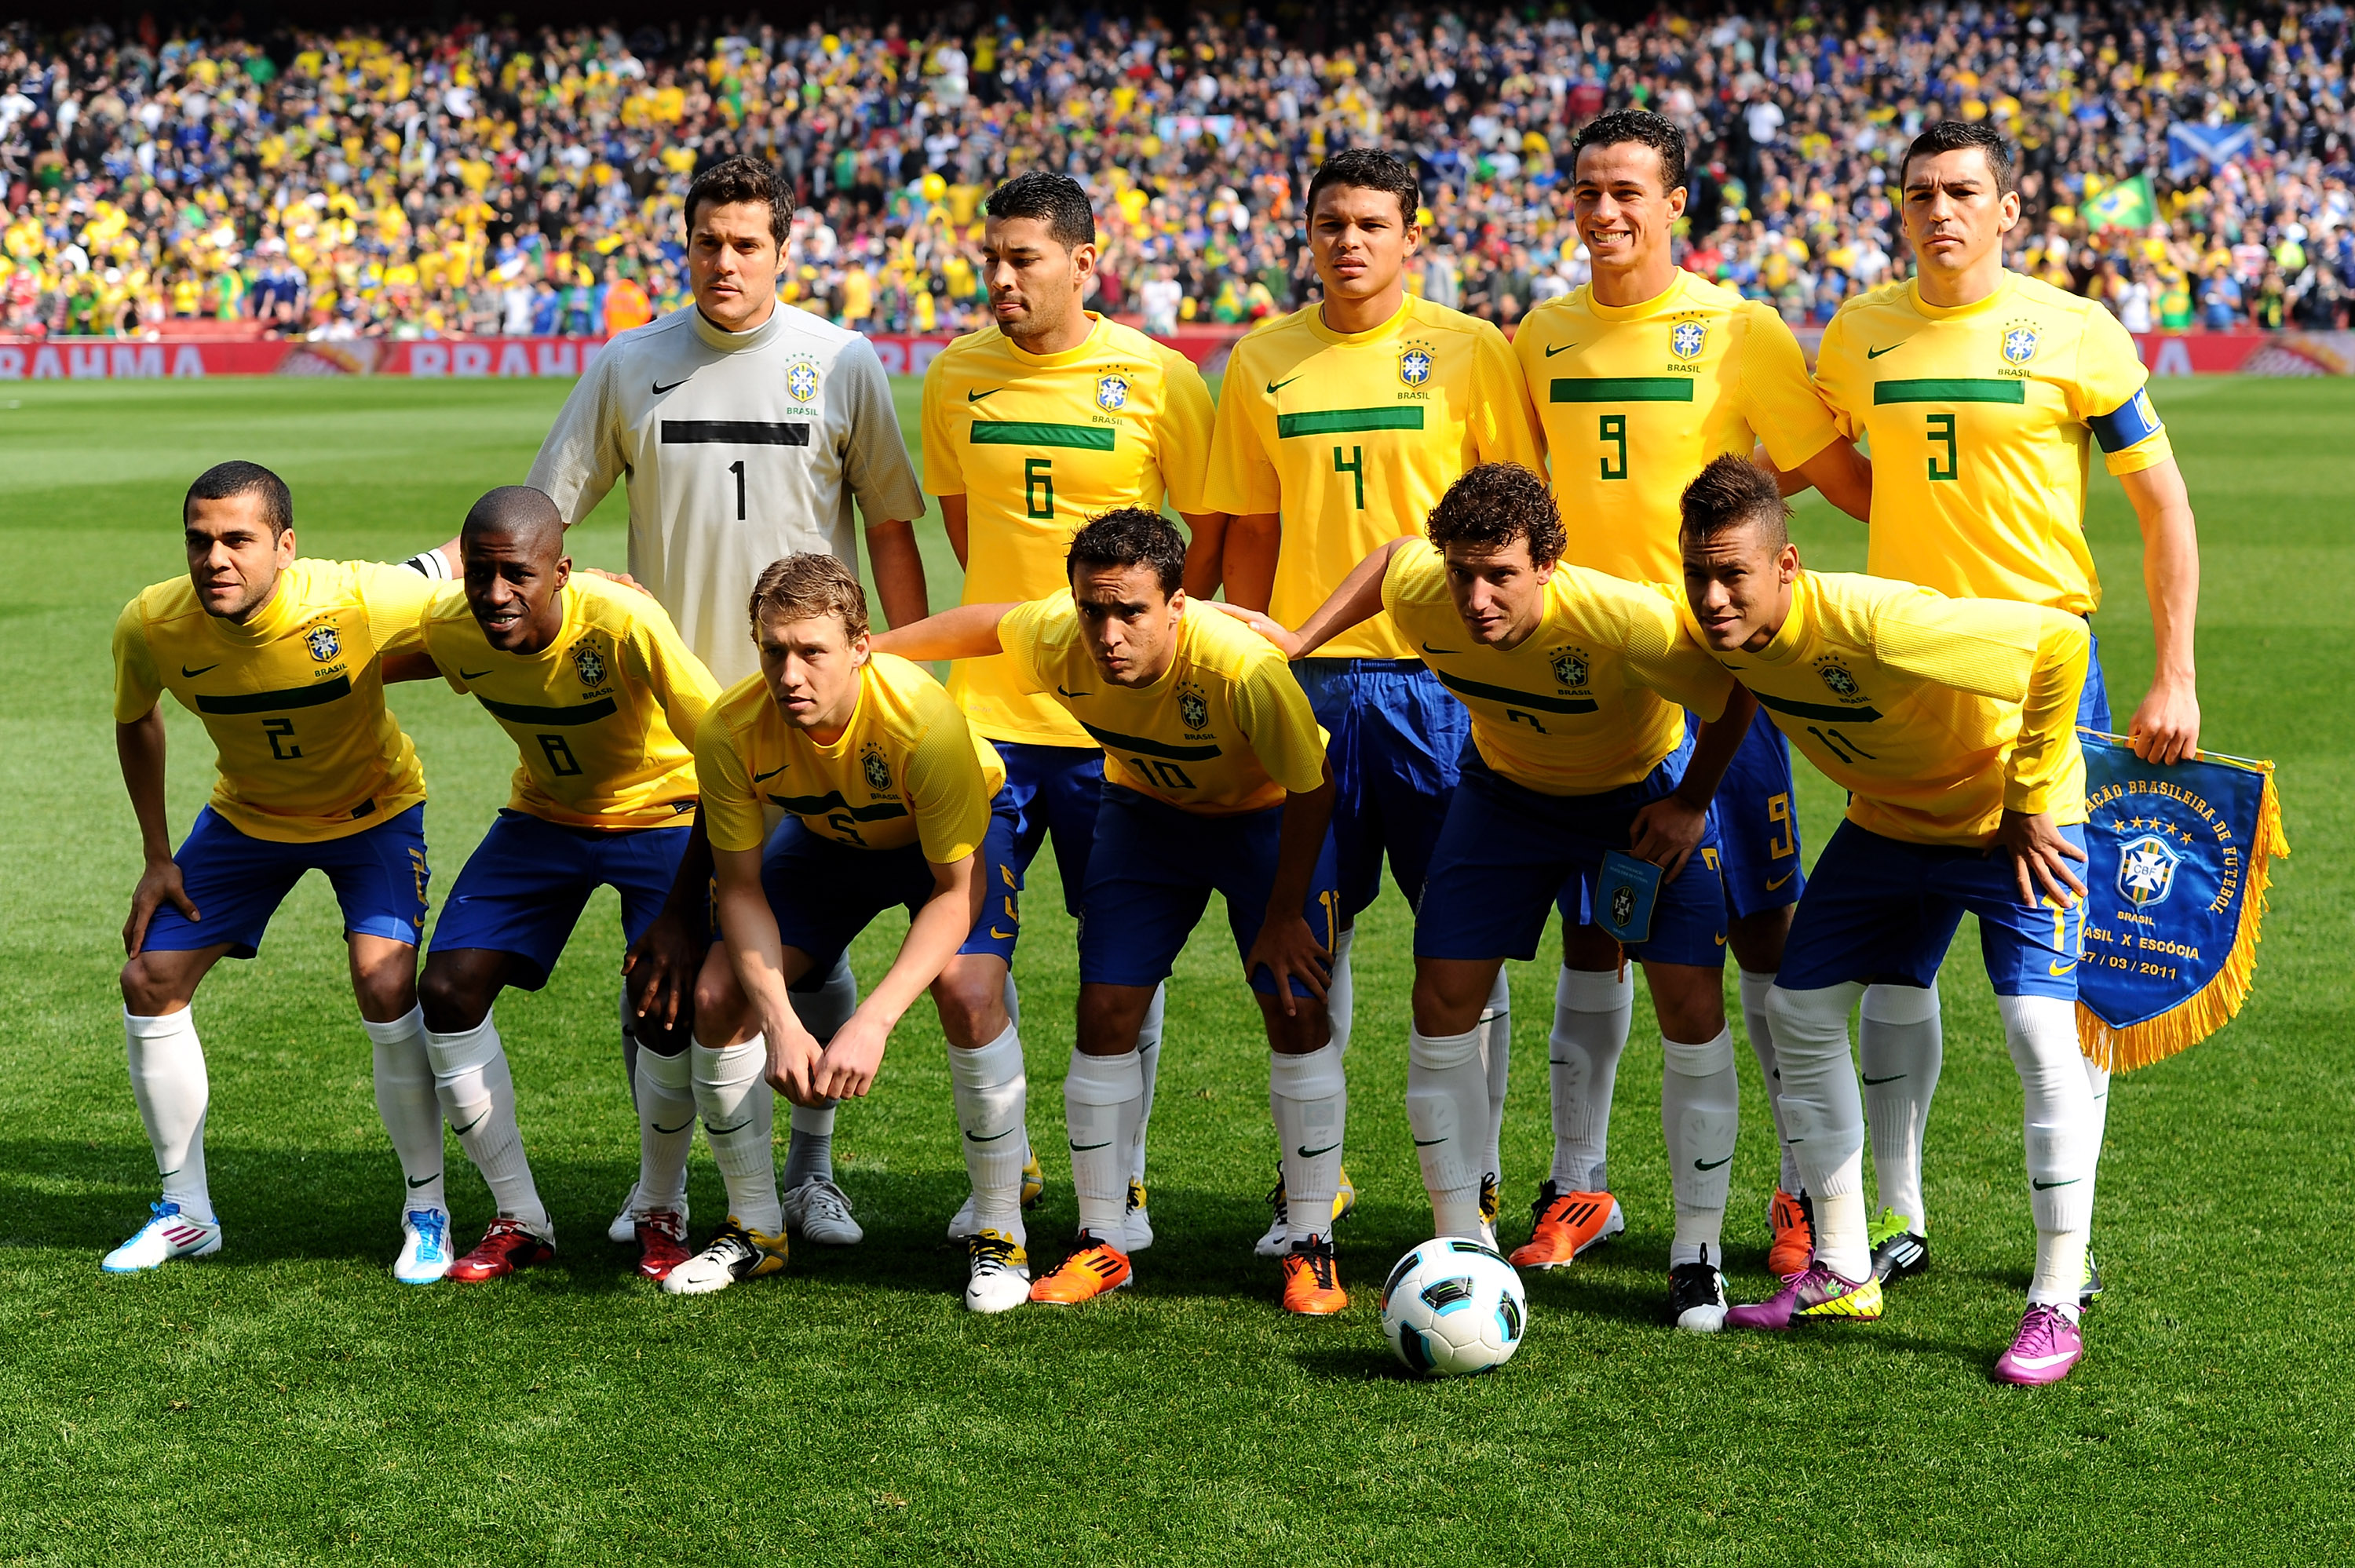 LONDON, ENGLAND - MARCH 27:  The Brazil team line up prior to the International friendly match between Brazil and Scotland at Emirates Stadium on March 27, 2011 in London, England.  (Photo by Mike Hewitt/Getty Images)